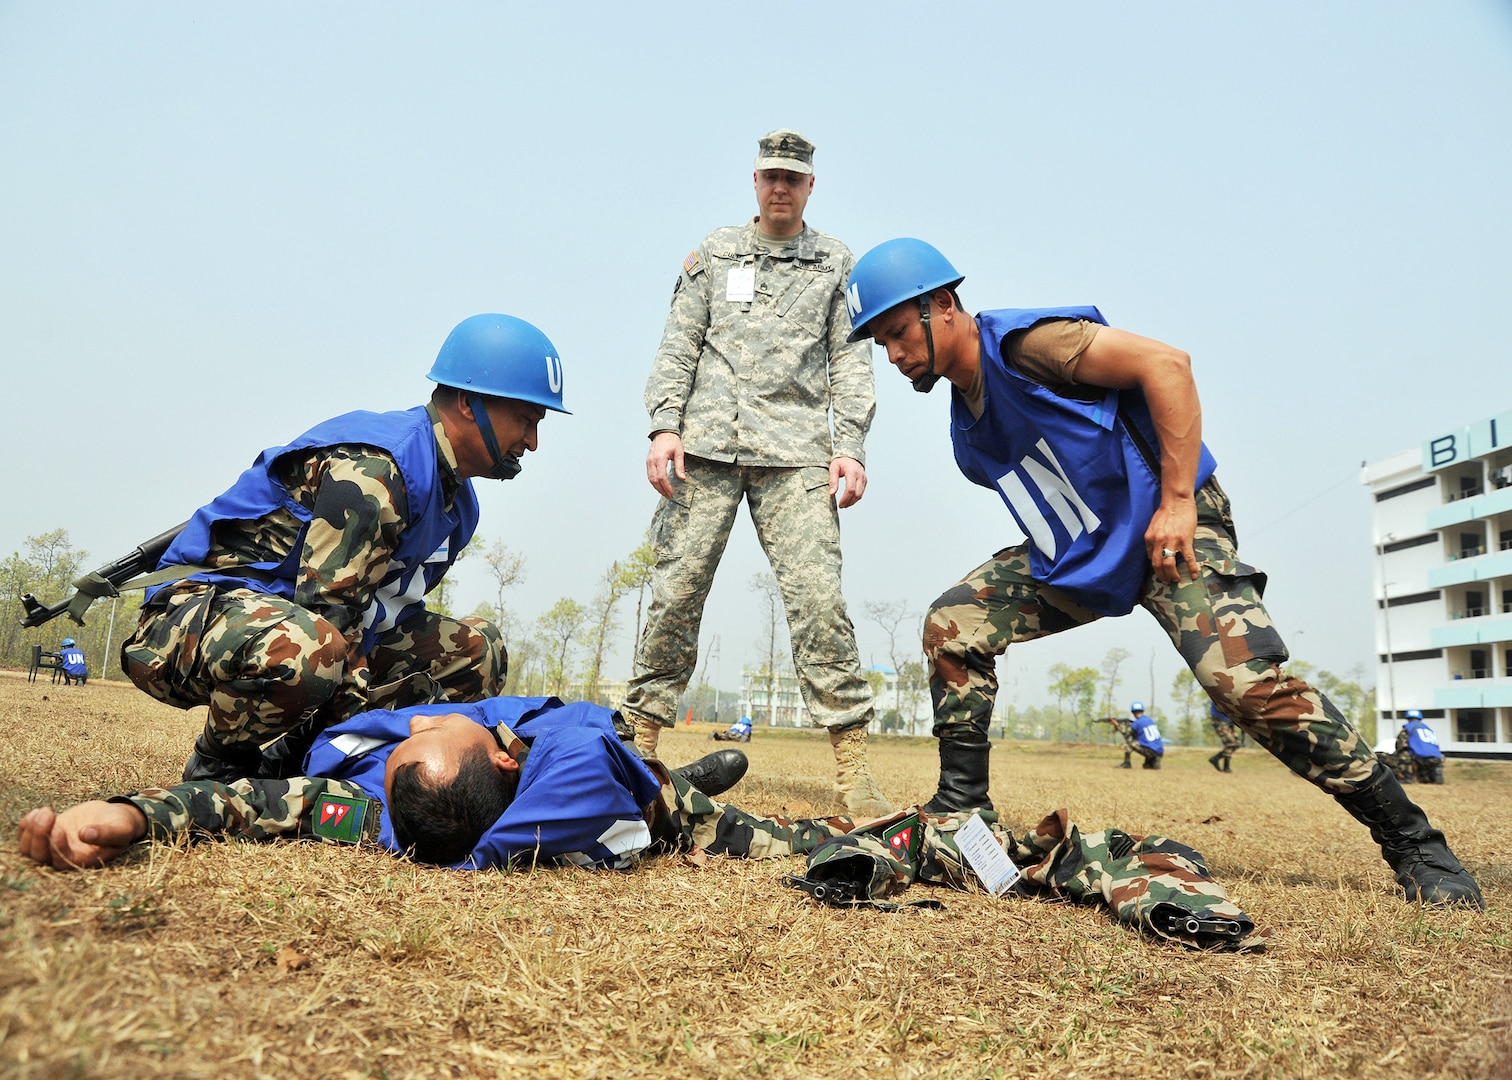 Oregon Army National Guard Staff Sgt. Darrin Culp, of the 249th Regiment Training Institute in Monmouth, Ore., oversees two Nepalese soldiers as they tend to their role-playing comrade during a medical emergency scenario on the first day of Exercise Shanti Doot 3, in Bangladesh March 9. Culp and his fellow Soldiers were invited to participate as a battlefield lifesaving technique instructors through the State Partnership Program between Oregon and Bangladesh. Exercise Shanti Doot 3 is a Bangladesh armed forces-hosted and U.S. Pacific Command Global Peace Operations Initiative supported joint multi-national exercise designed to give operations, logistics, planning and tactical peace-keeping training to members of 13 different countries in preparation for United Nations Peace-keeping Operations.